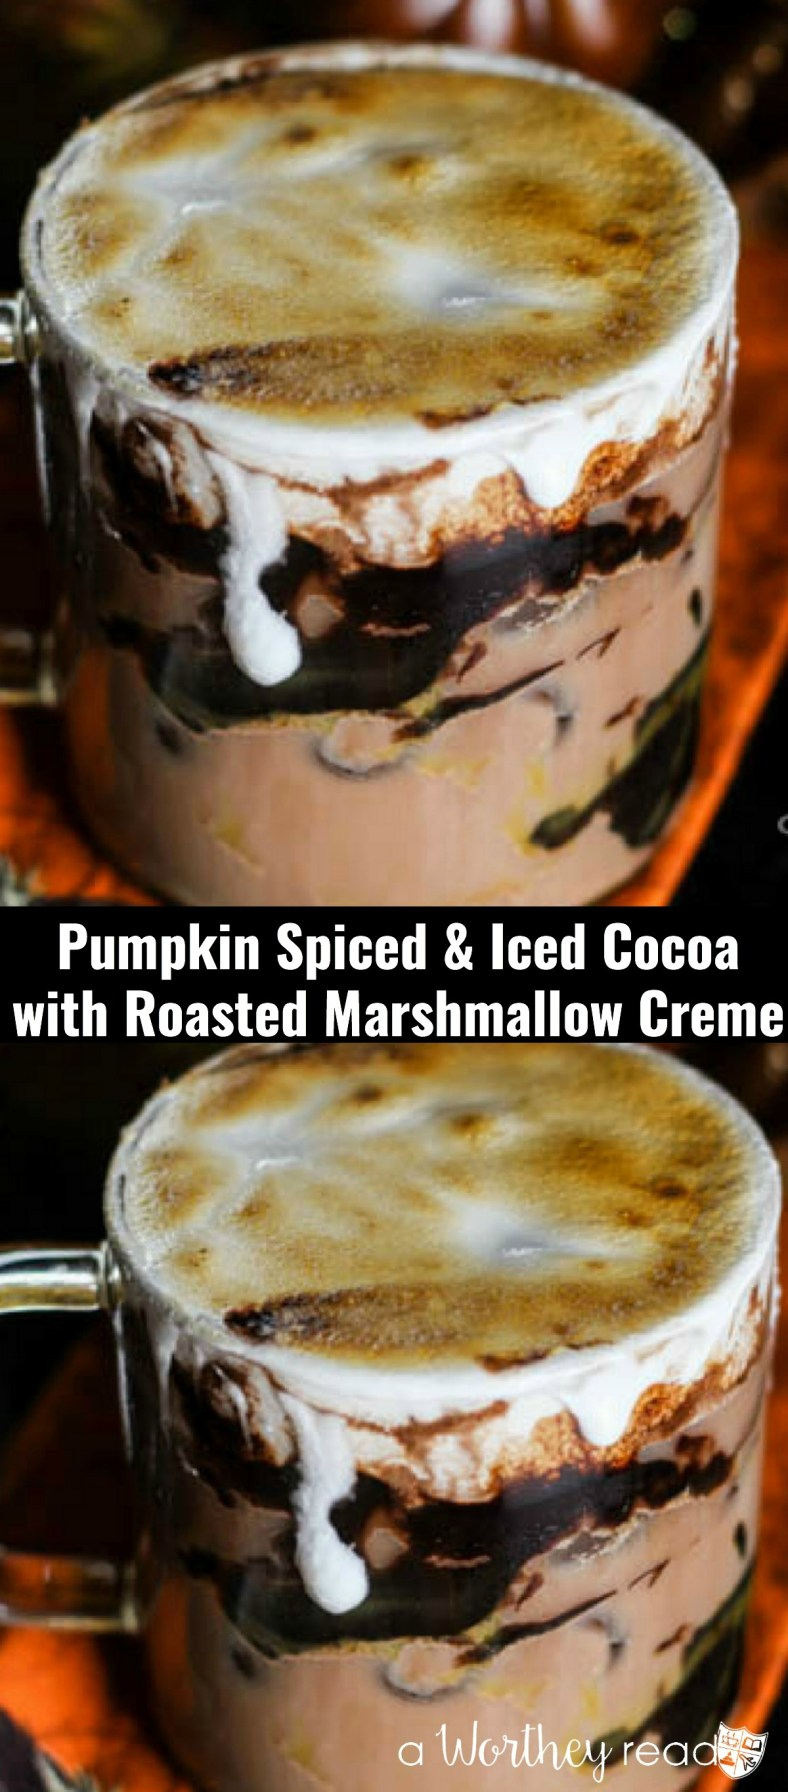 Curl up this fall with this delicious Pumpkin flavored hot chocolate. Pumpkin Spiced & Iced Cocoa with Roasted Marshmallow Creme